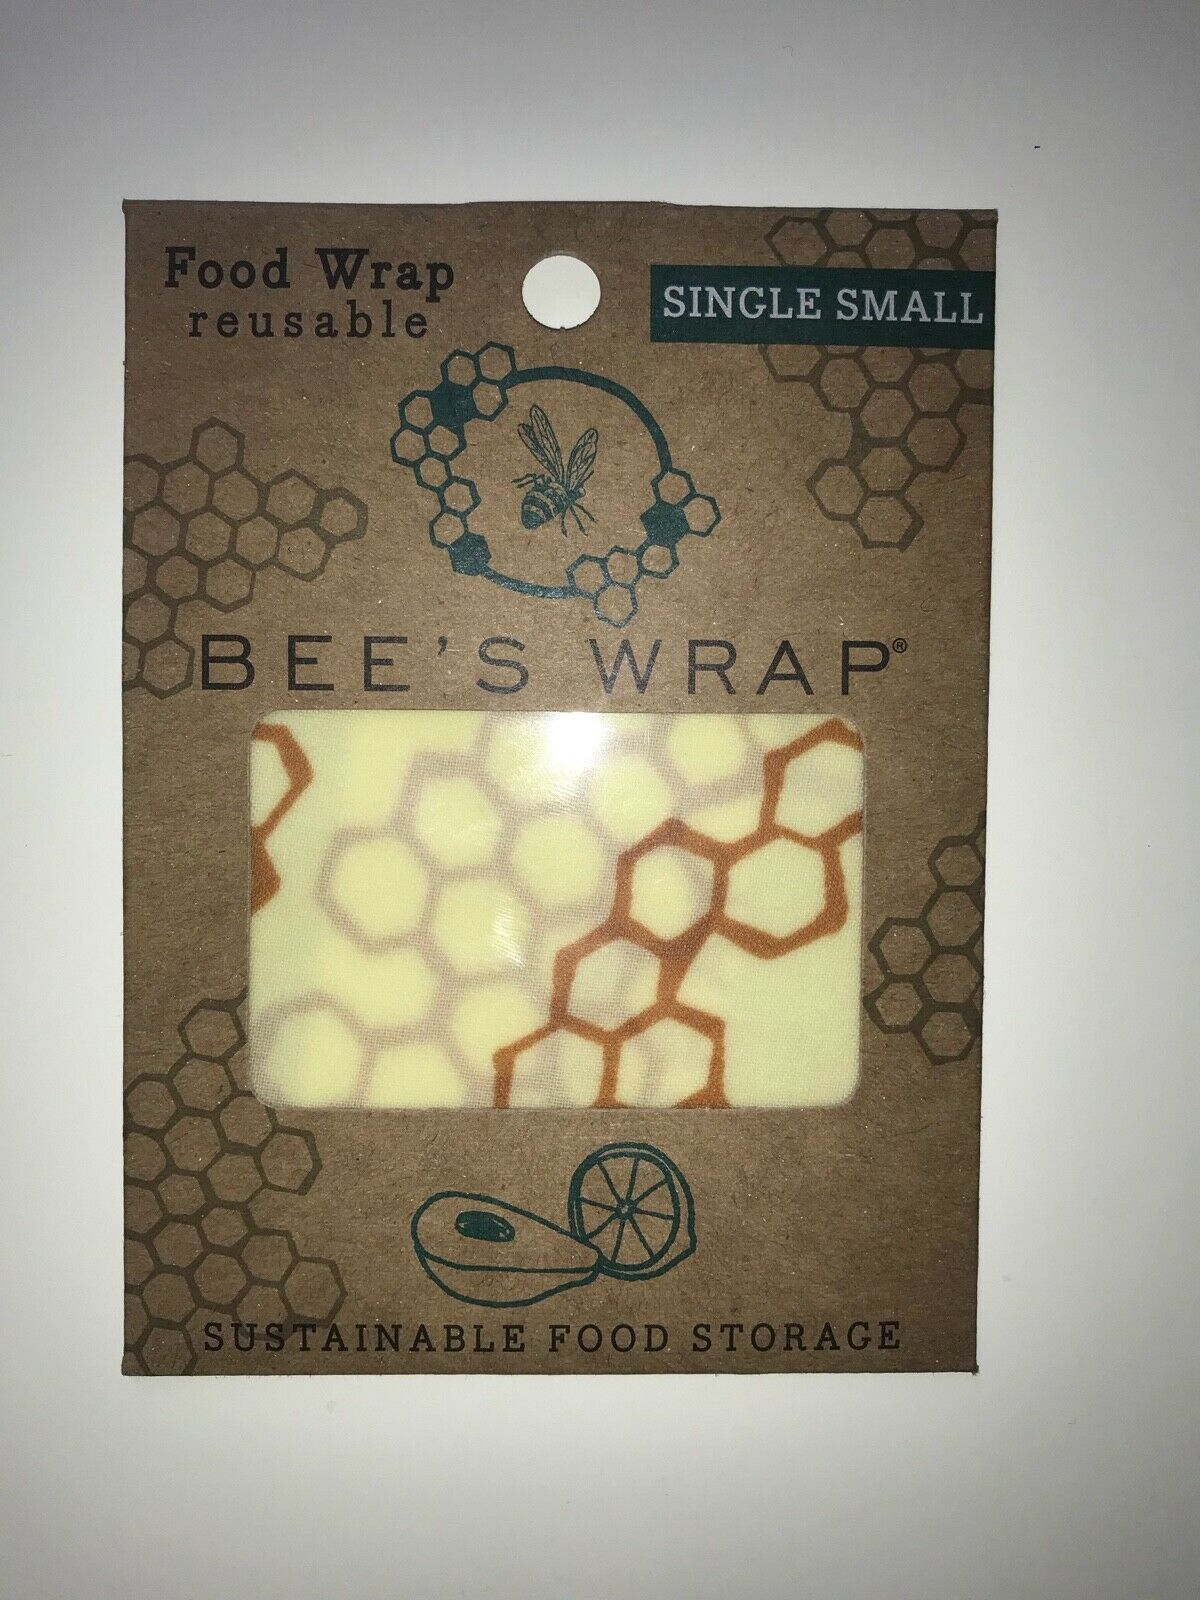 Primary image for Bee's Wrap Bee's Wrap Single Small Reusable Sustainable Food Wrap Storage